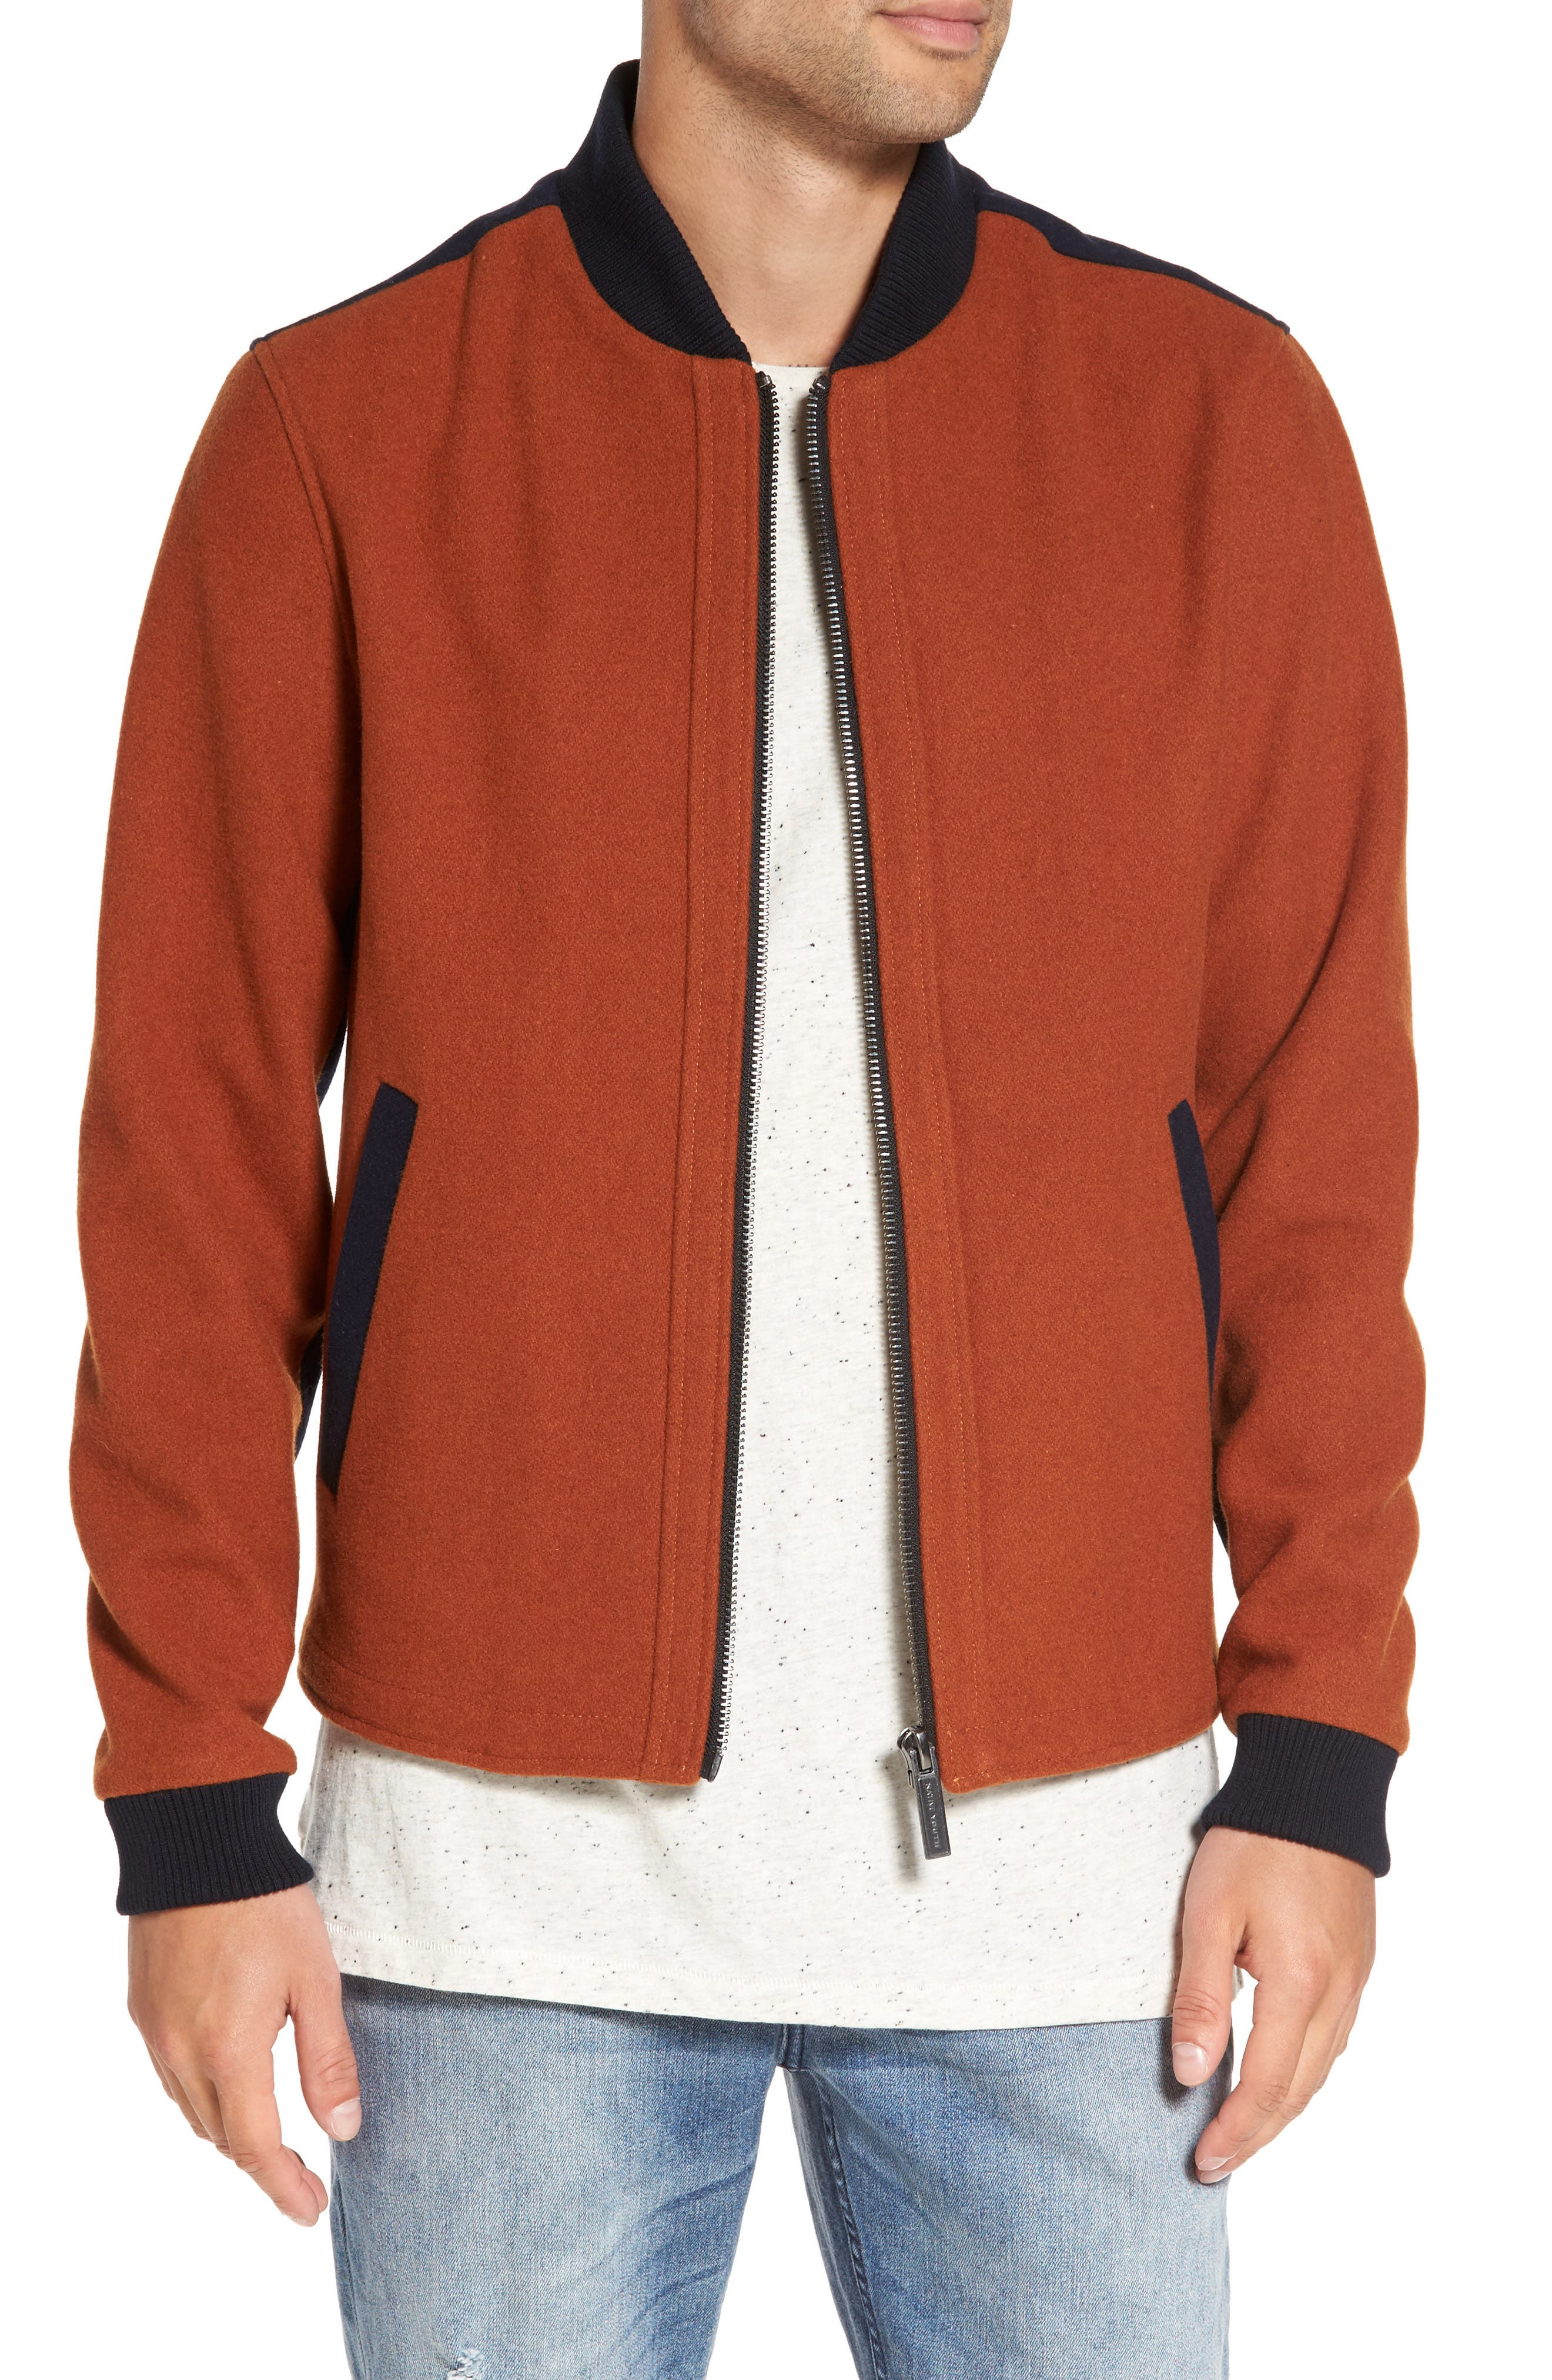 Maldon Bomber Jacket,                             Main thumbnail 1, color,                             800